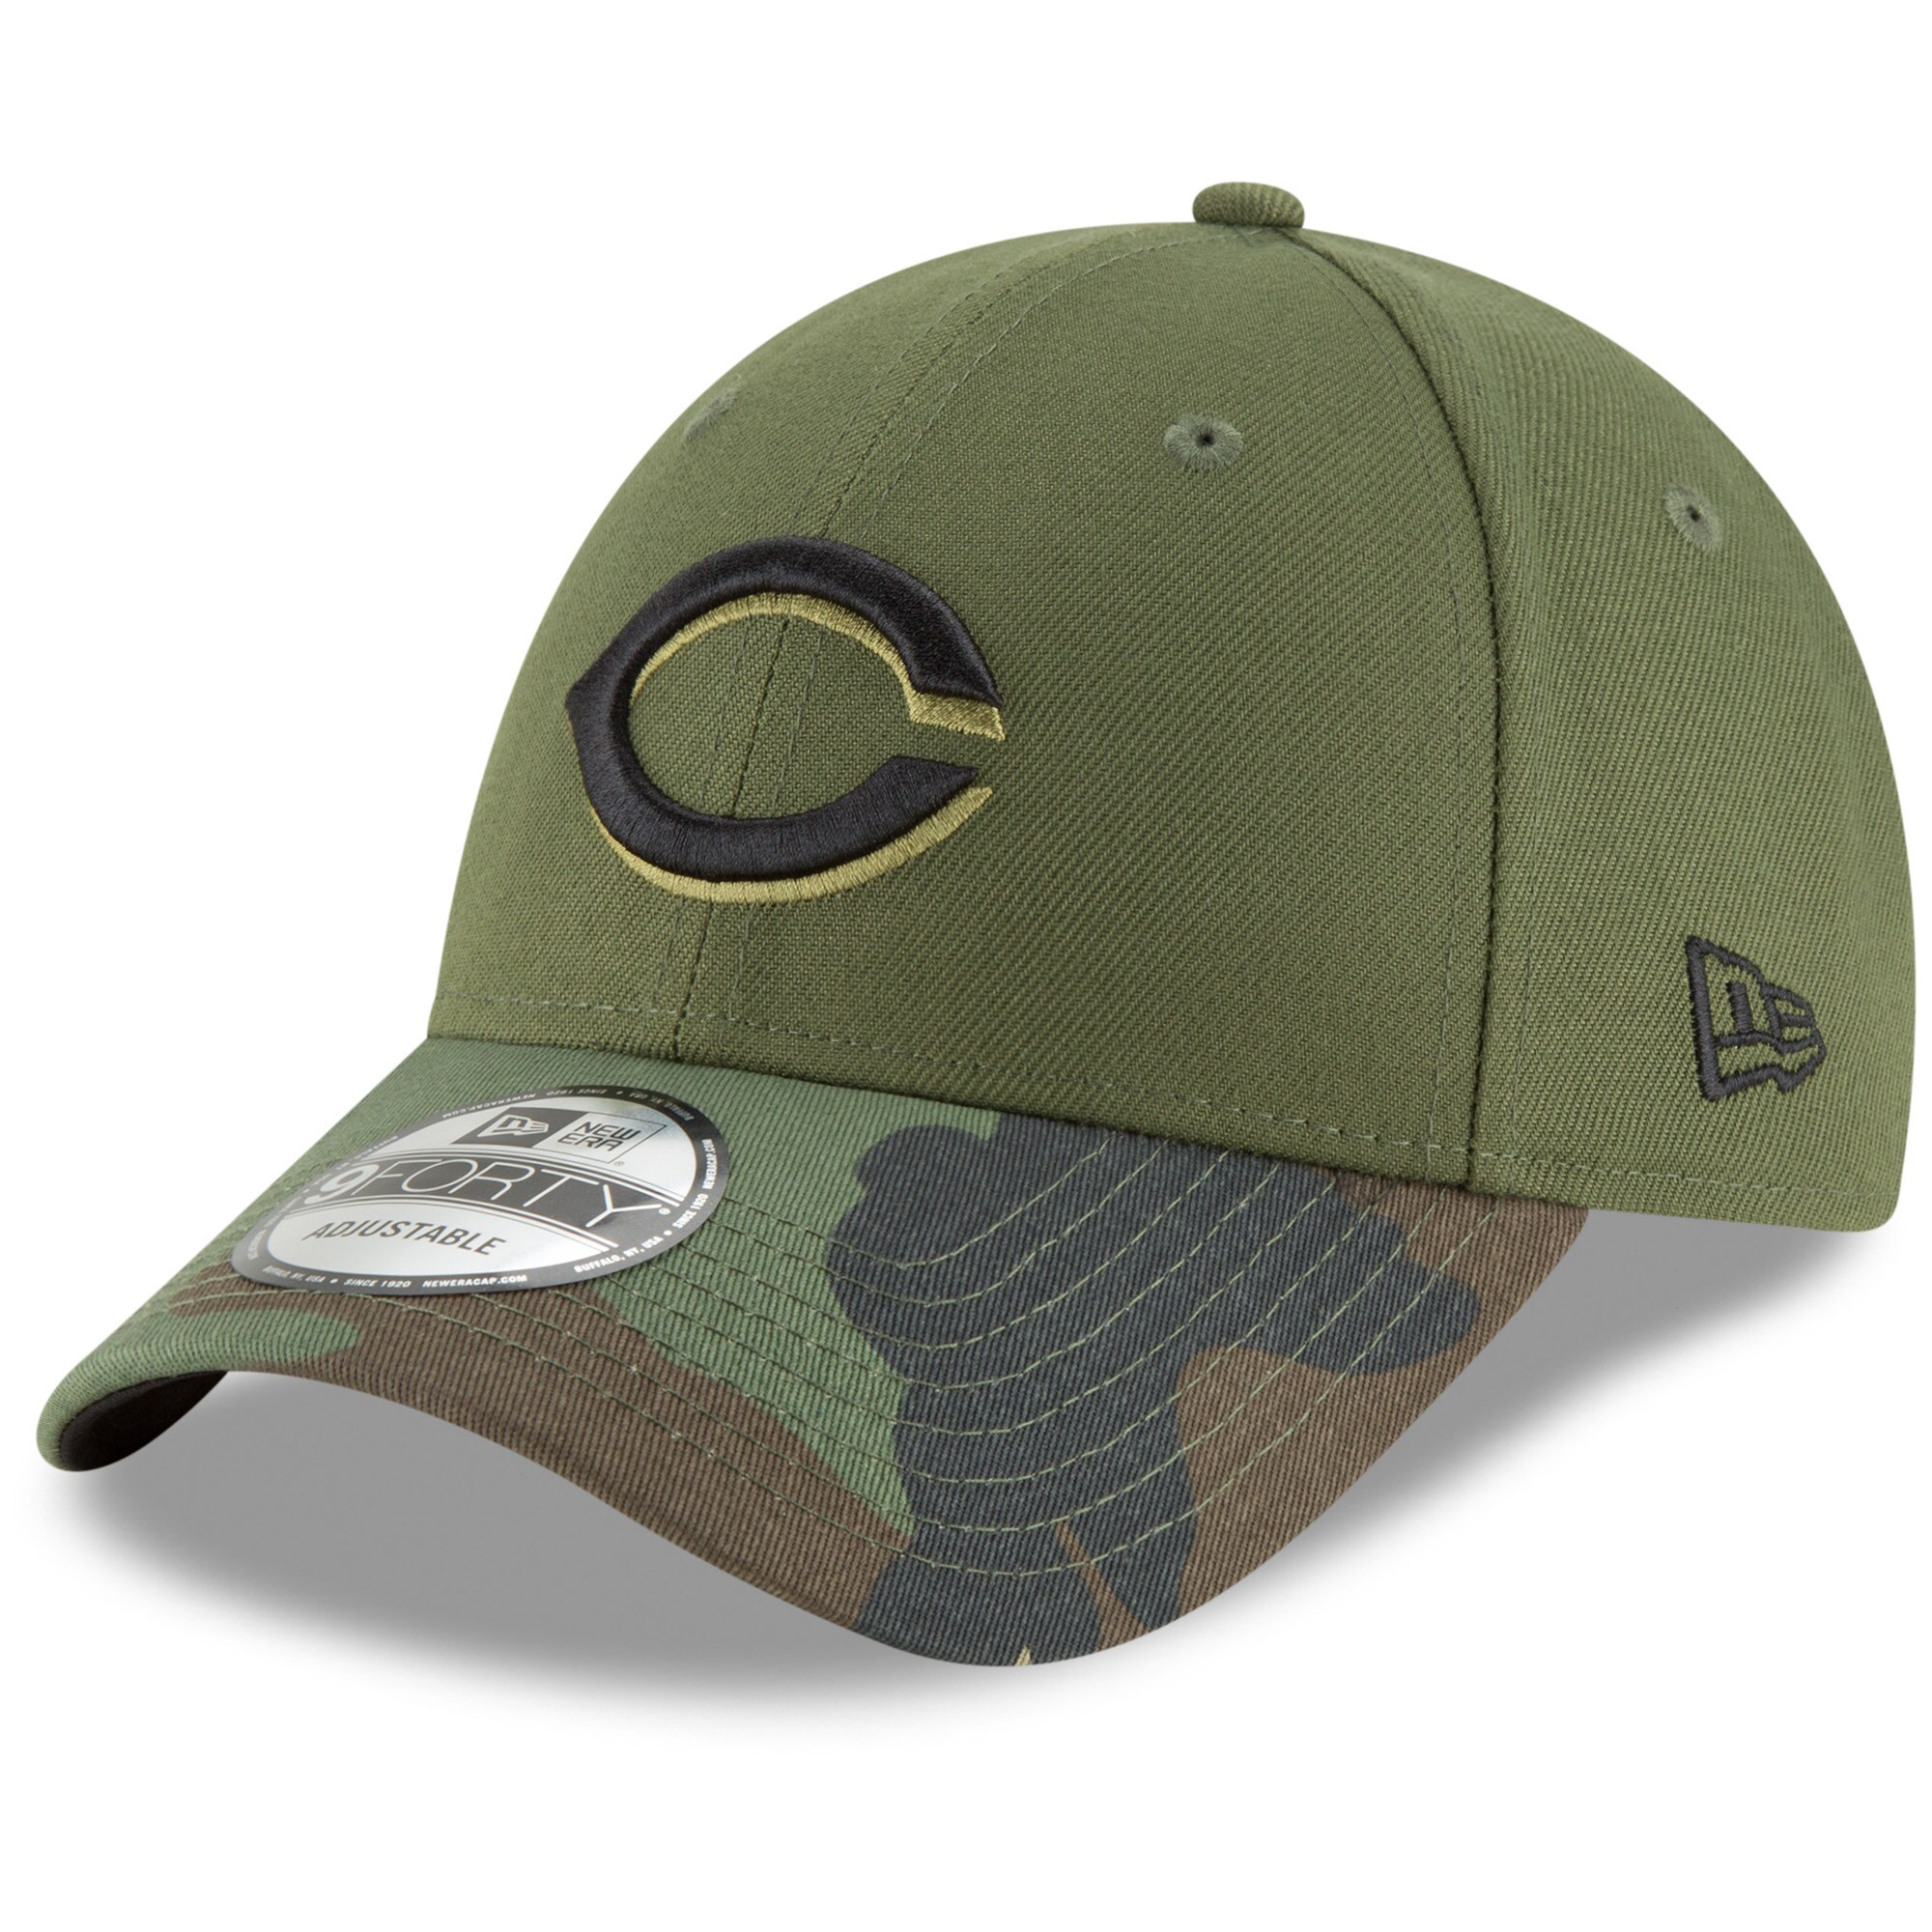 Cincinnati Reds New Era Alternate 2 The League 9FORTY Adjustable Hat - Olive